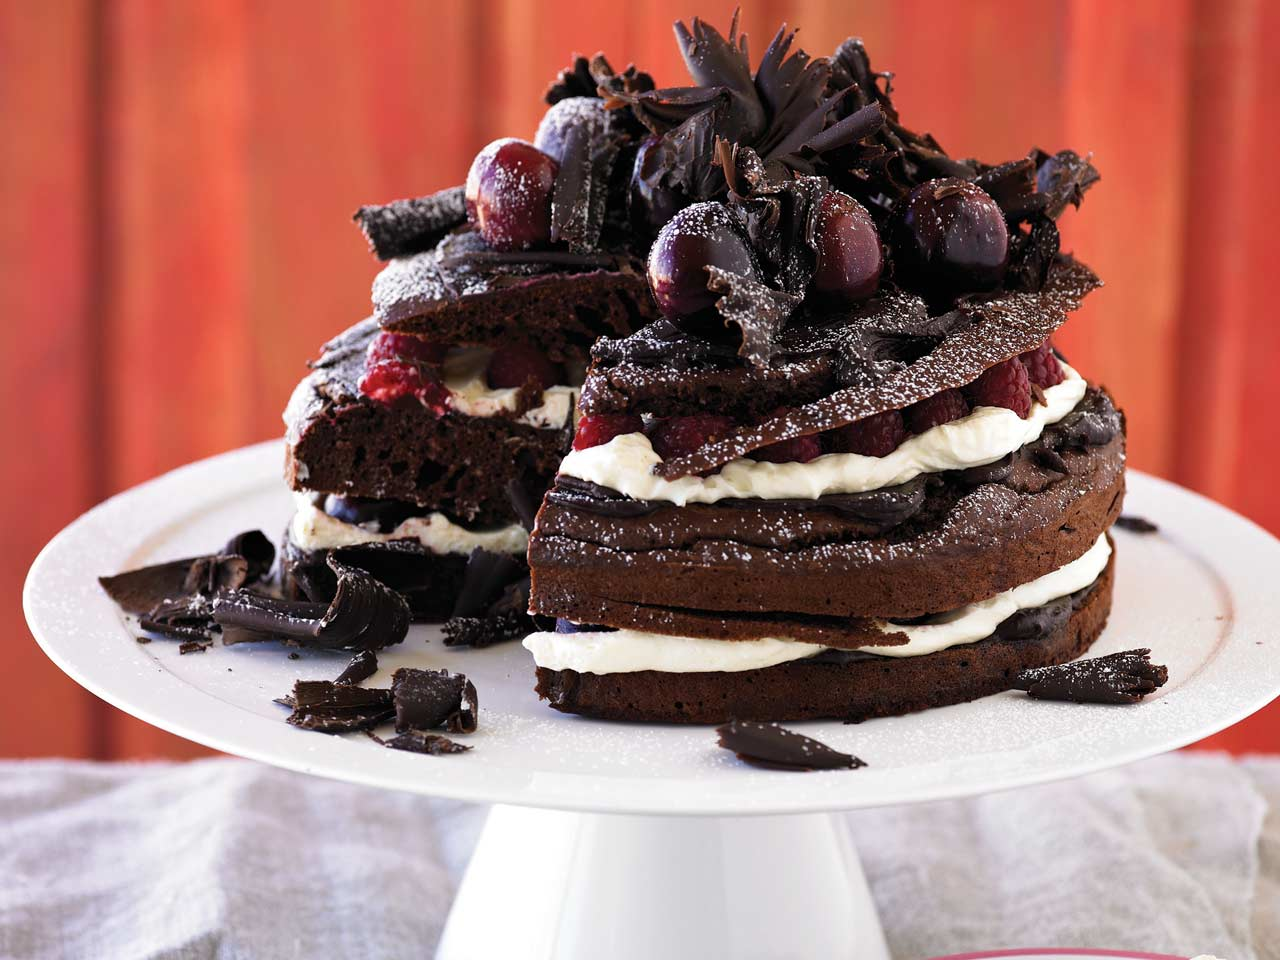 Not-so-naughty chocolate cake